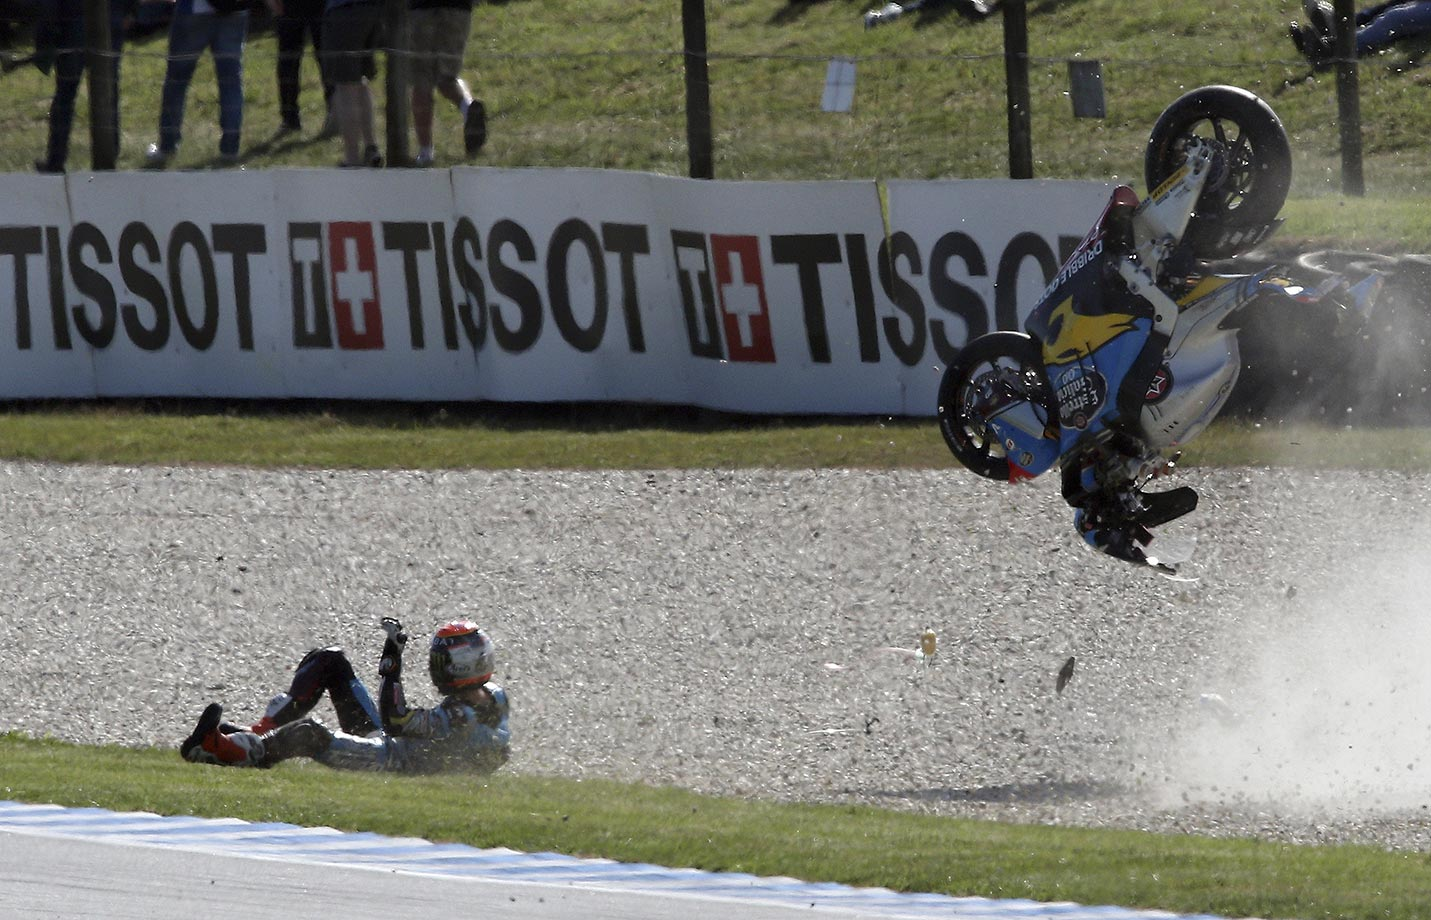 Moto2 rider Tito Rabat of Spain crashes on the exit to turn 11 during free practice for the Australian Motorcycle Grand Prix.